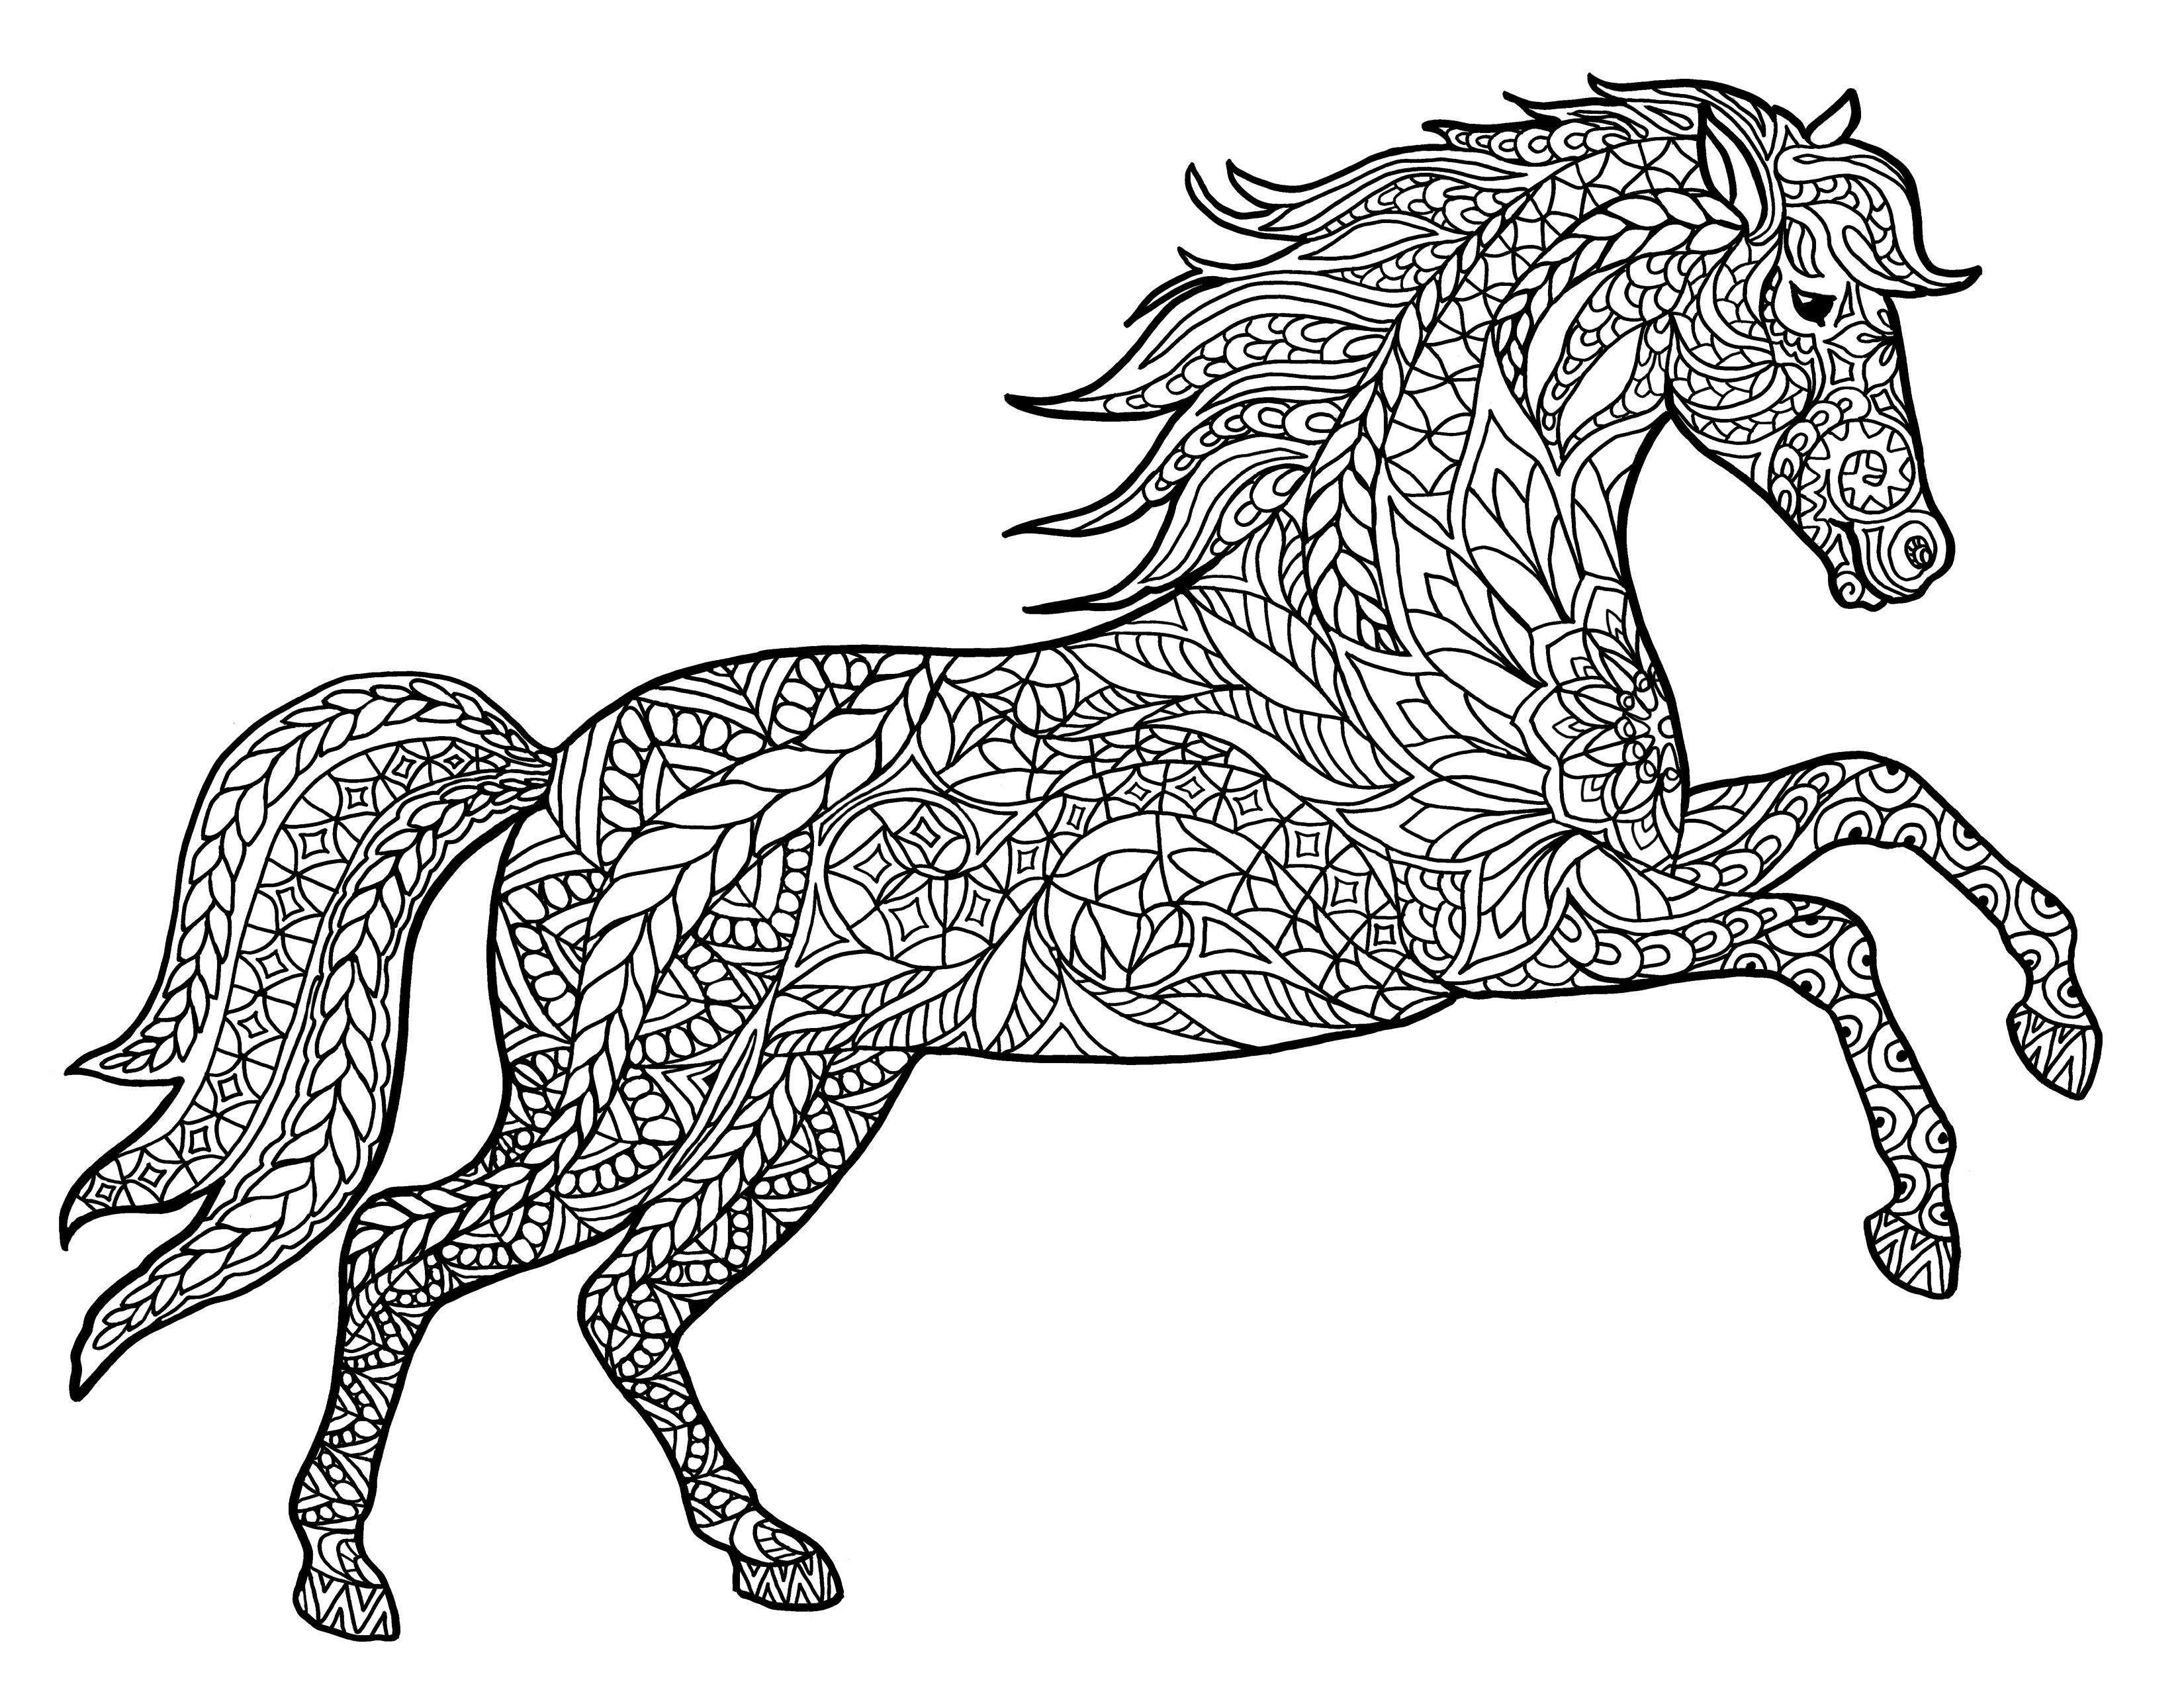 pictures of horses to colour in free horse coloring pages for adults kids cowgirl magazine to of pictures in horses colour